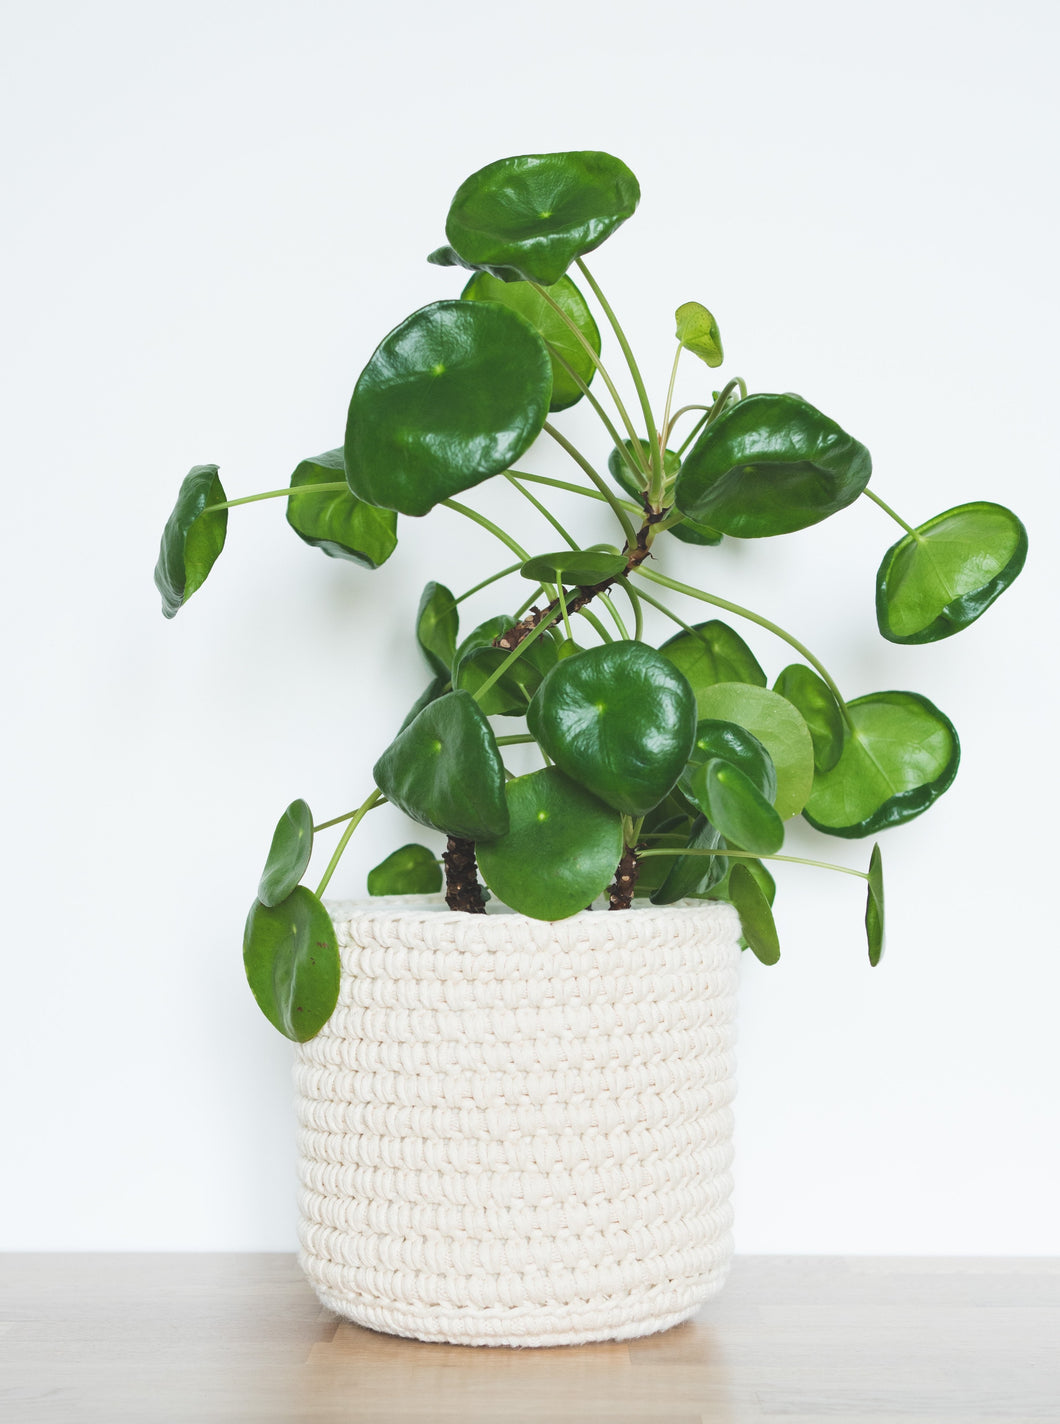 Medium eco plant pot - natural - Knttd coloured handmade plant pot cover made from recycled cotton yarn with watertight inner pot made from recycled plastic